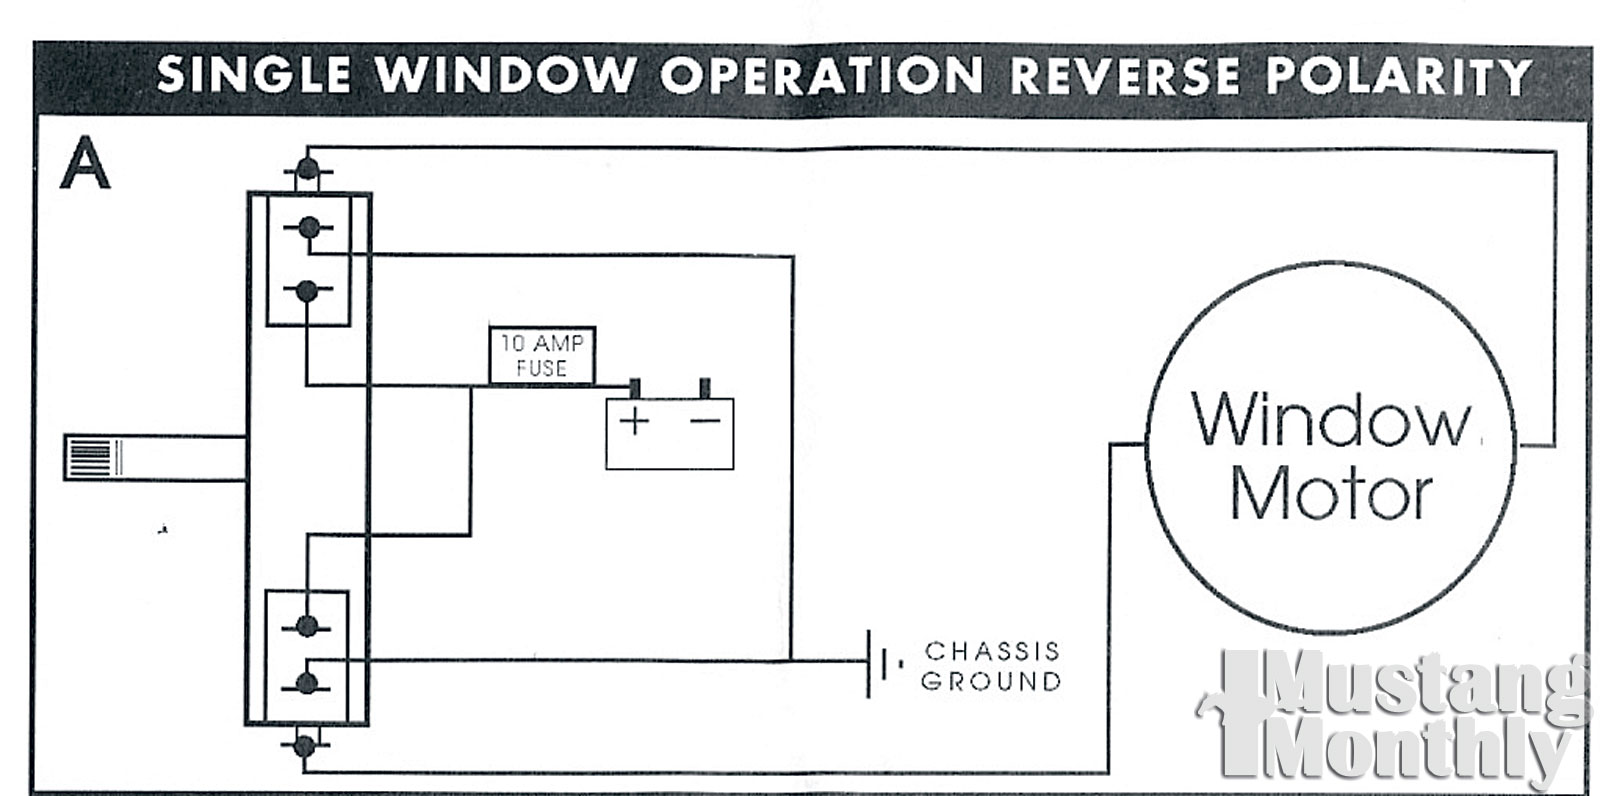 mump 1107 20 electric life power windows single window wiring diagram [ 1600 x 796 Pixel ]